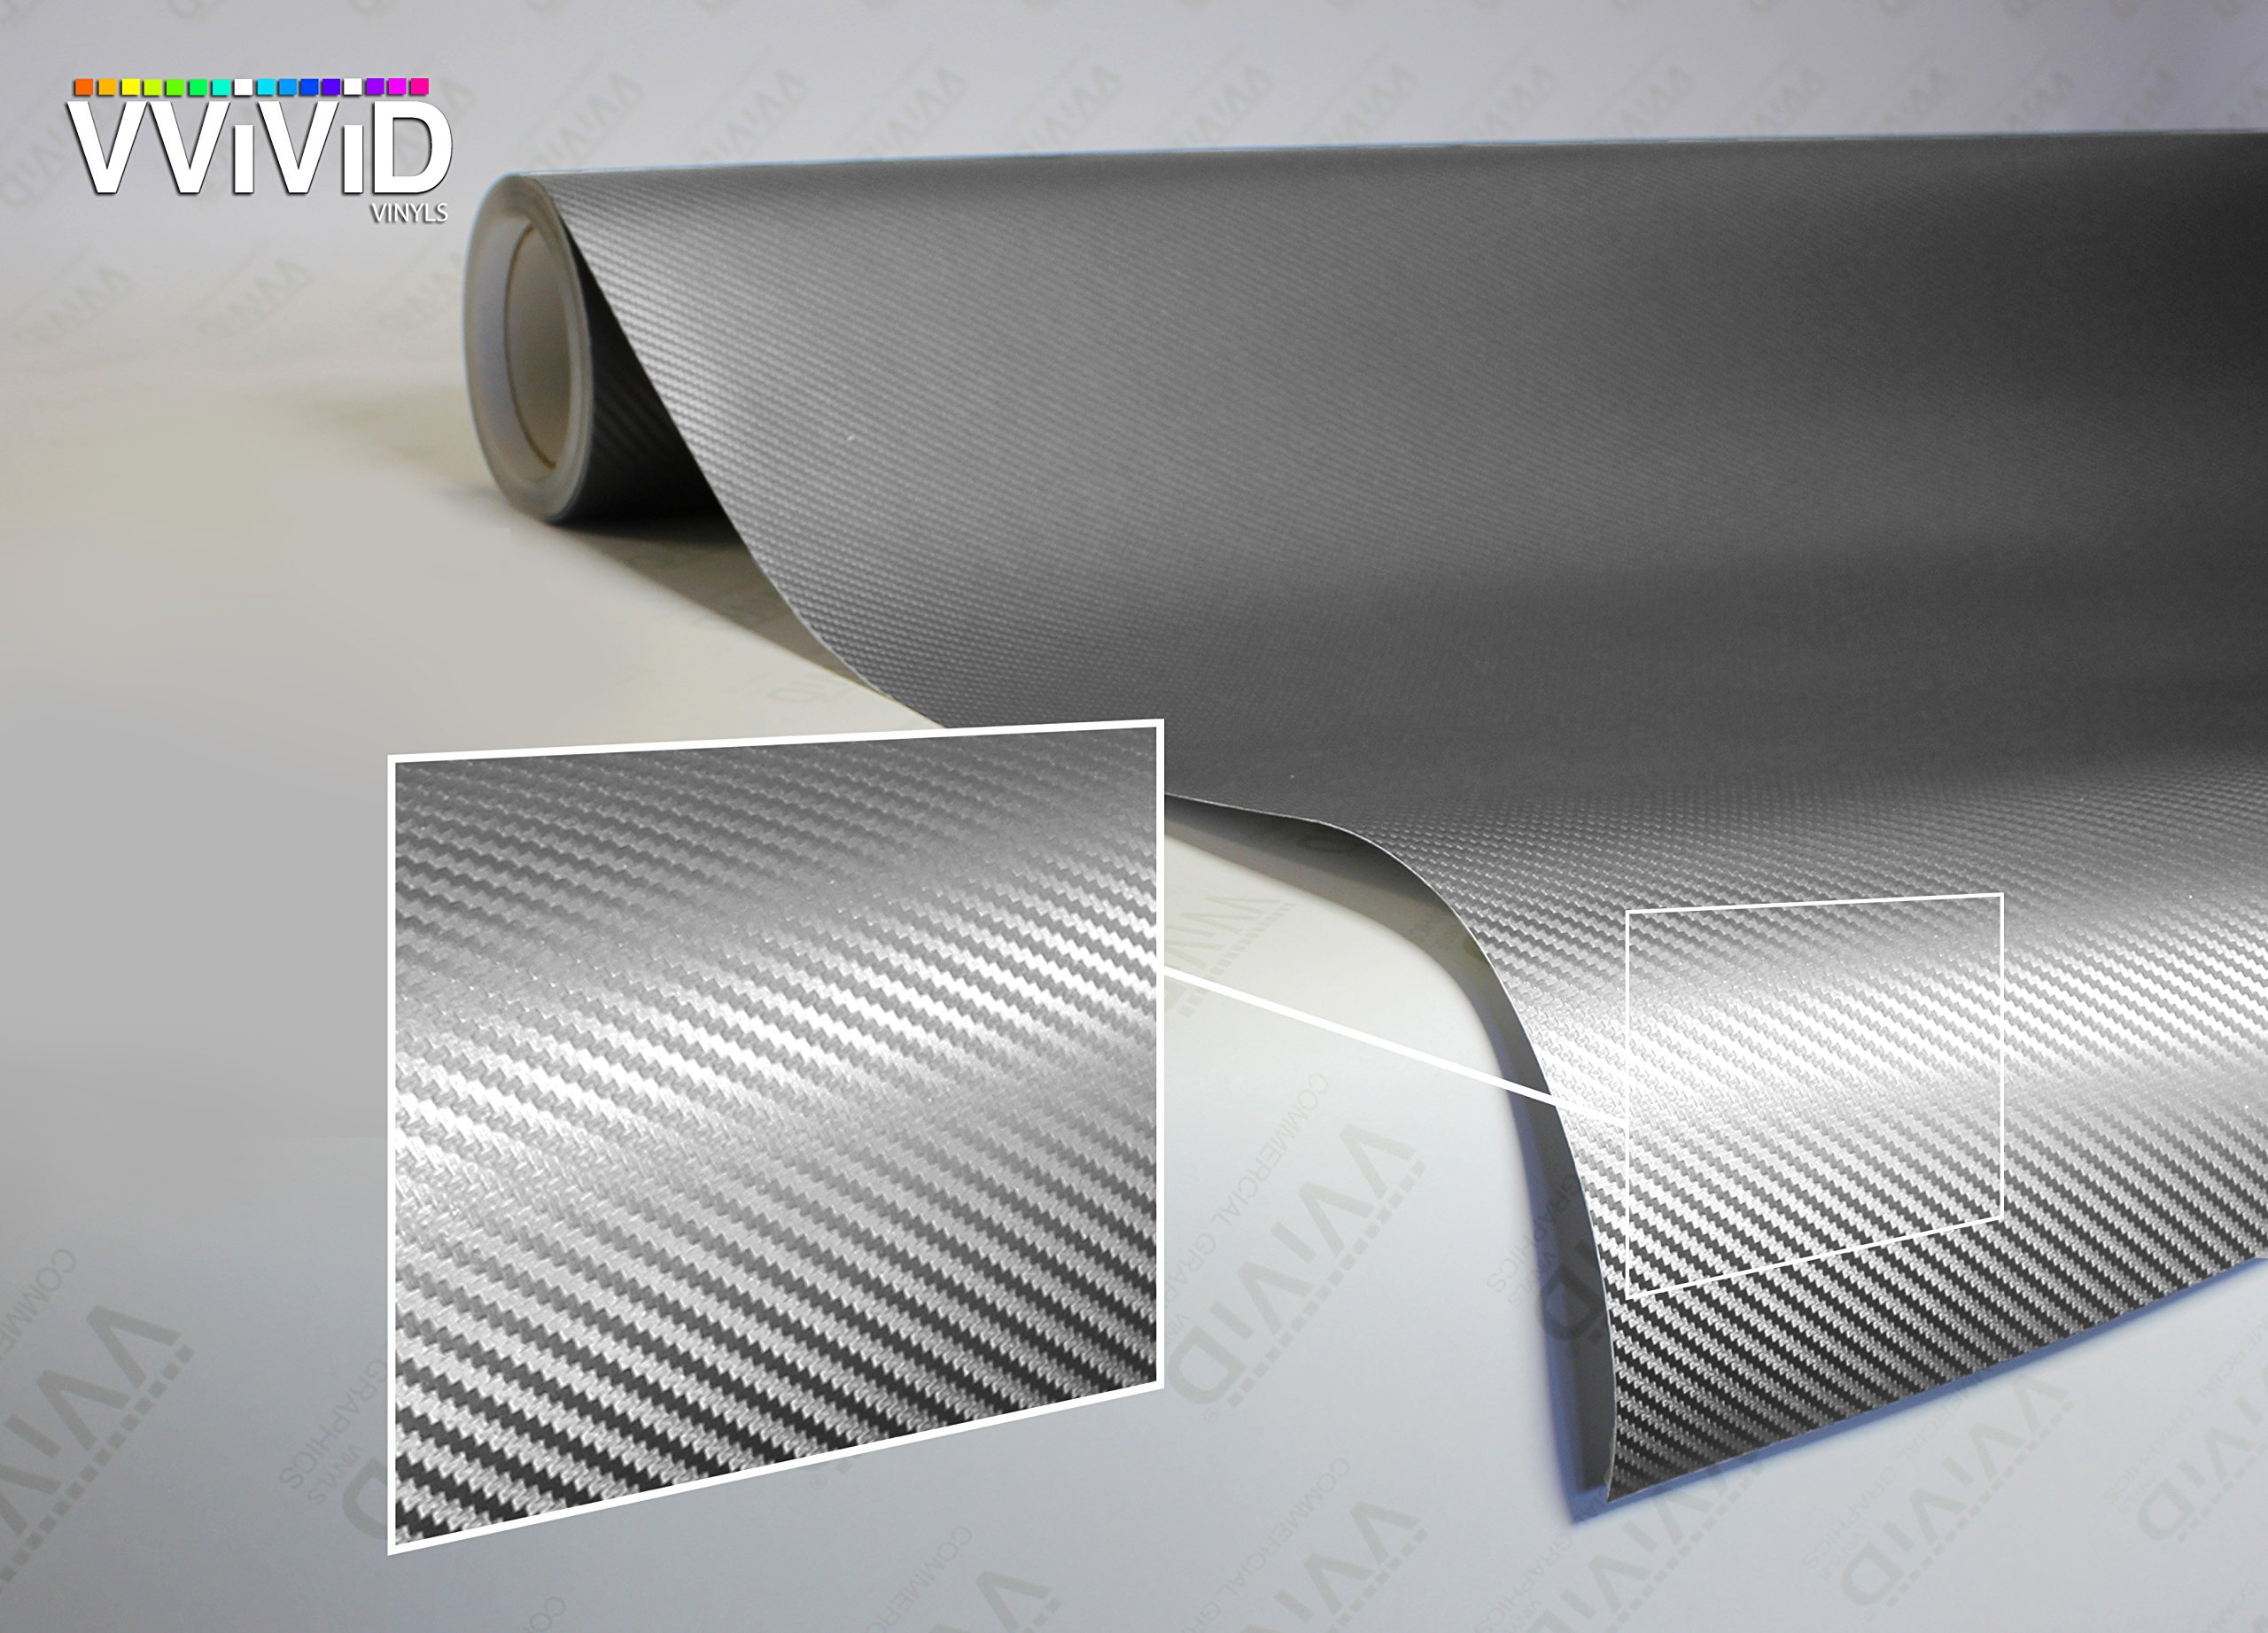 VViViD XPO Sterling Silver 3D Carbon Fiber Vinyl Wrap Roll with Air Release Technology (10ft x 5ft)